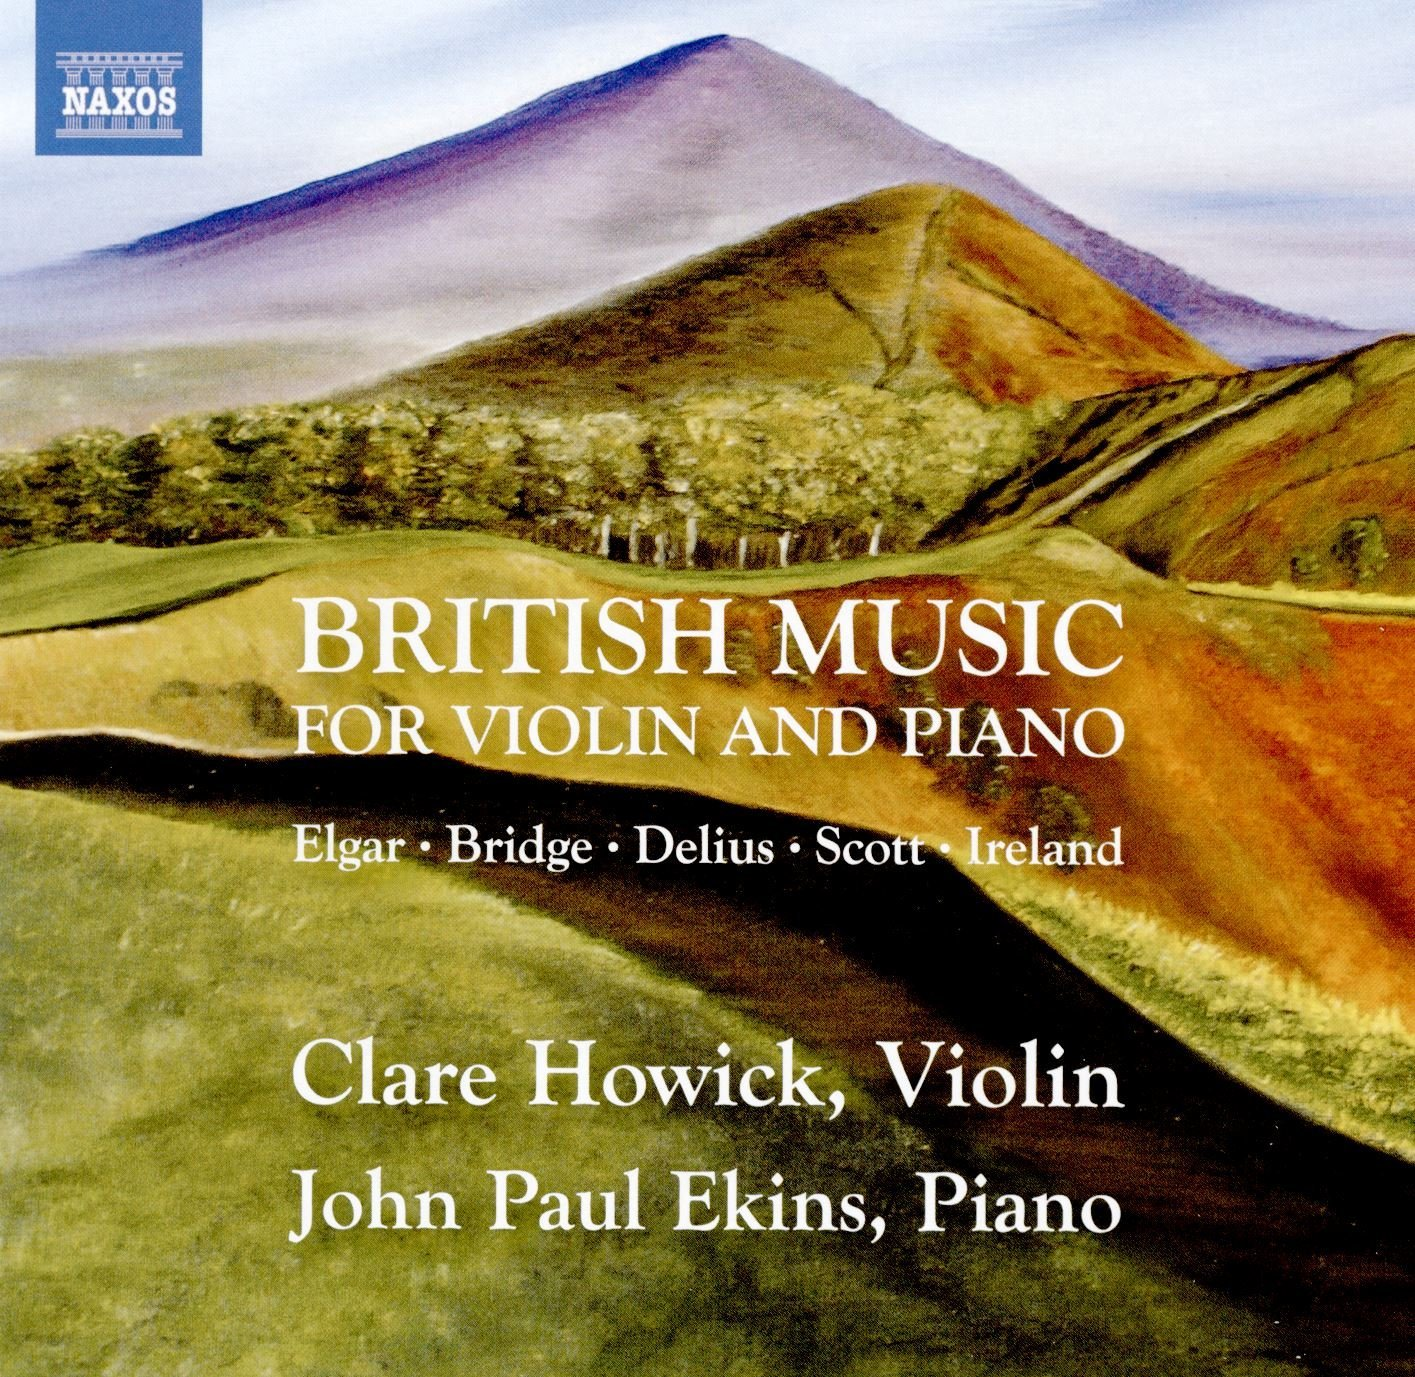 British Music for Violin and Piano: Clare Howick a